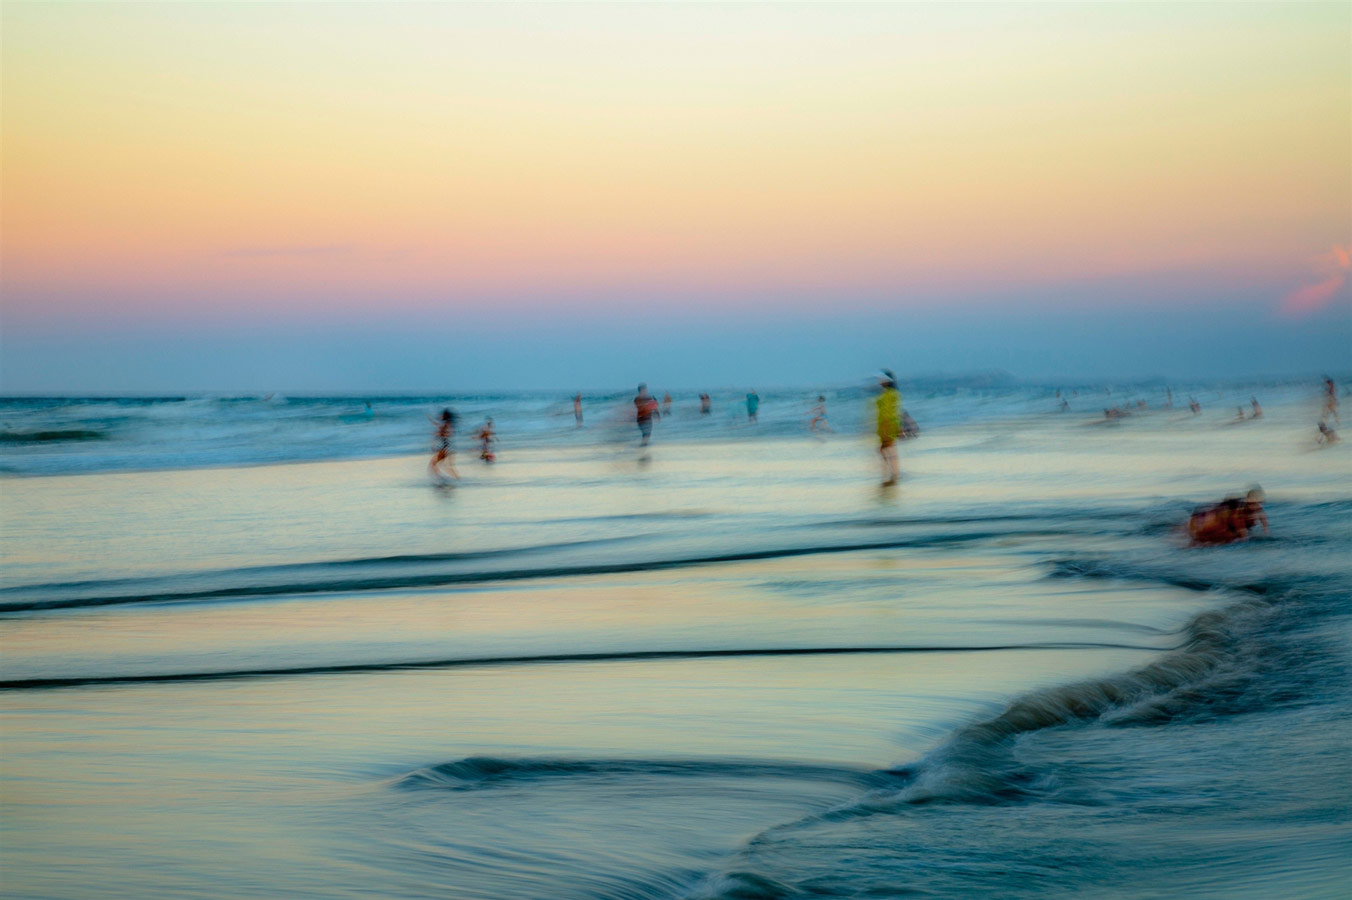 © Renata Vale, At Dusk, Photography 21 x 32, The Chelsea International Photography Competition